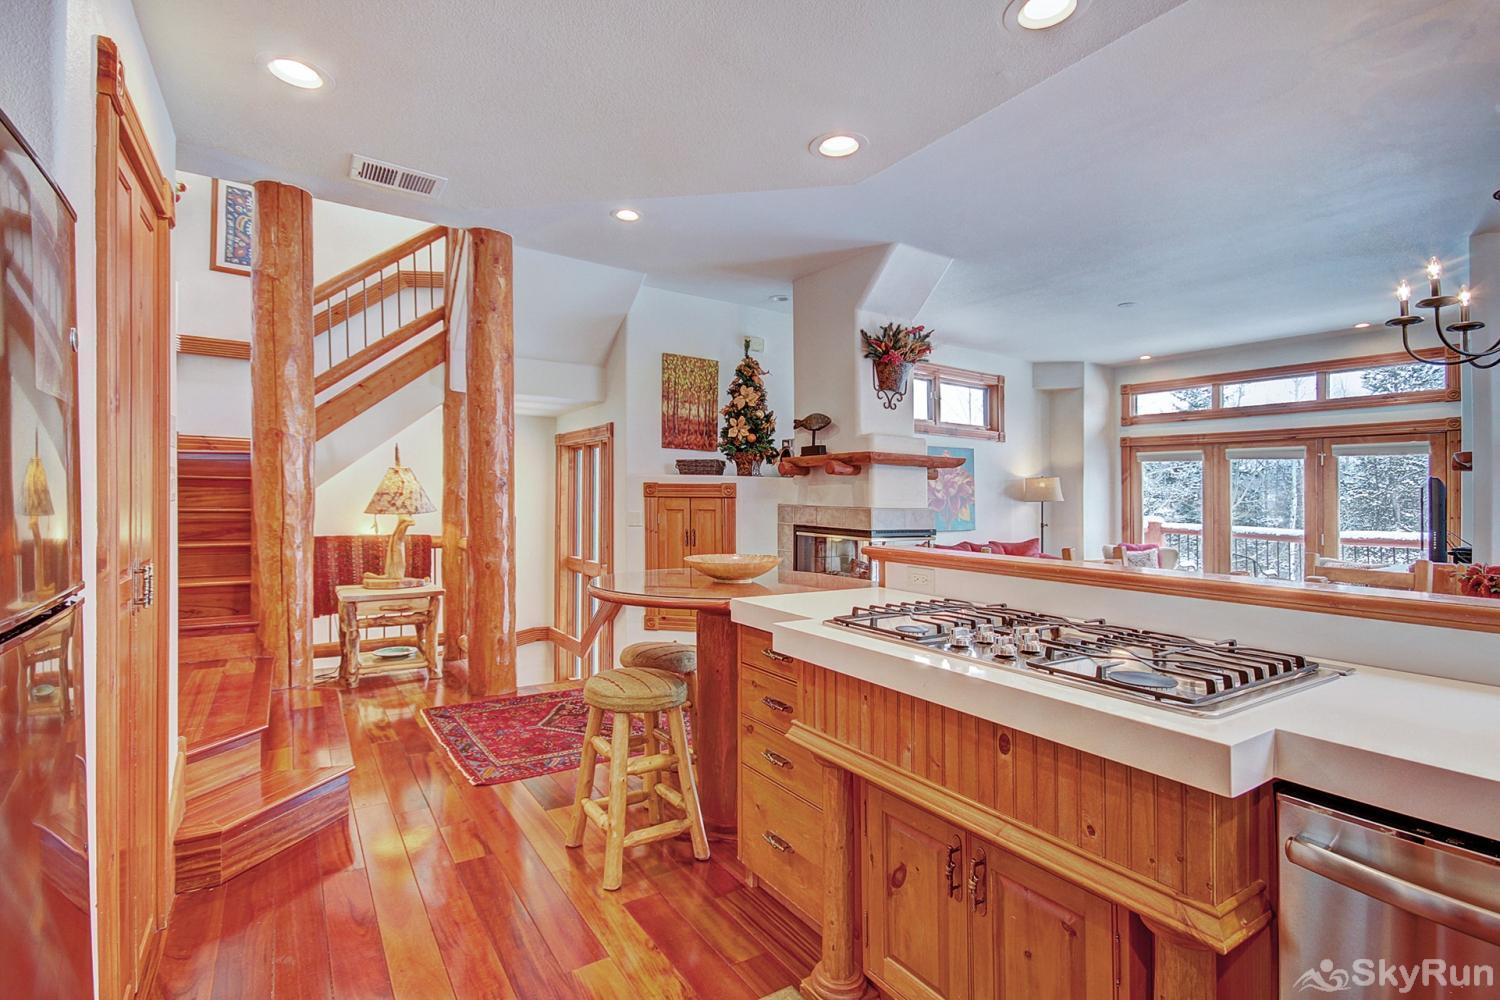 Dogwood Lodge Kitchen opens up to living room area